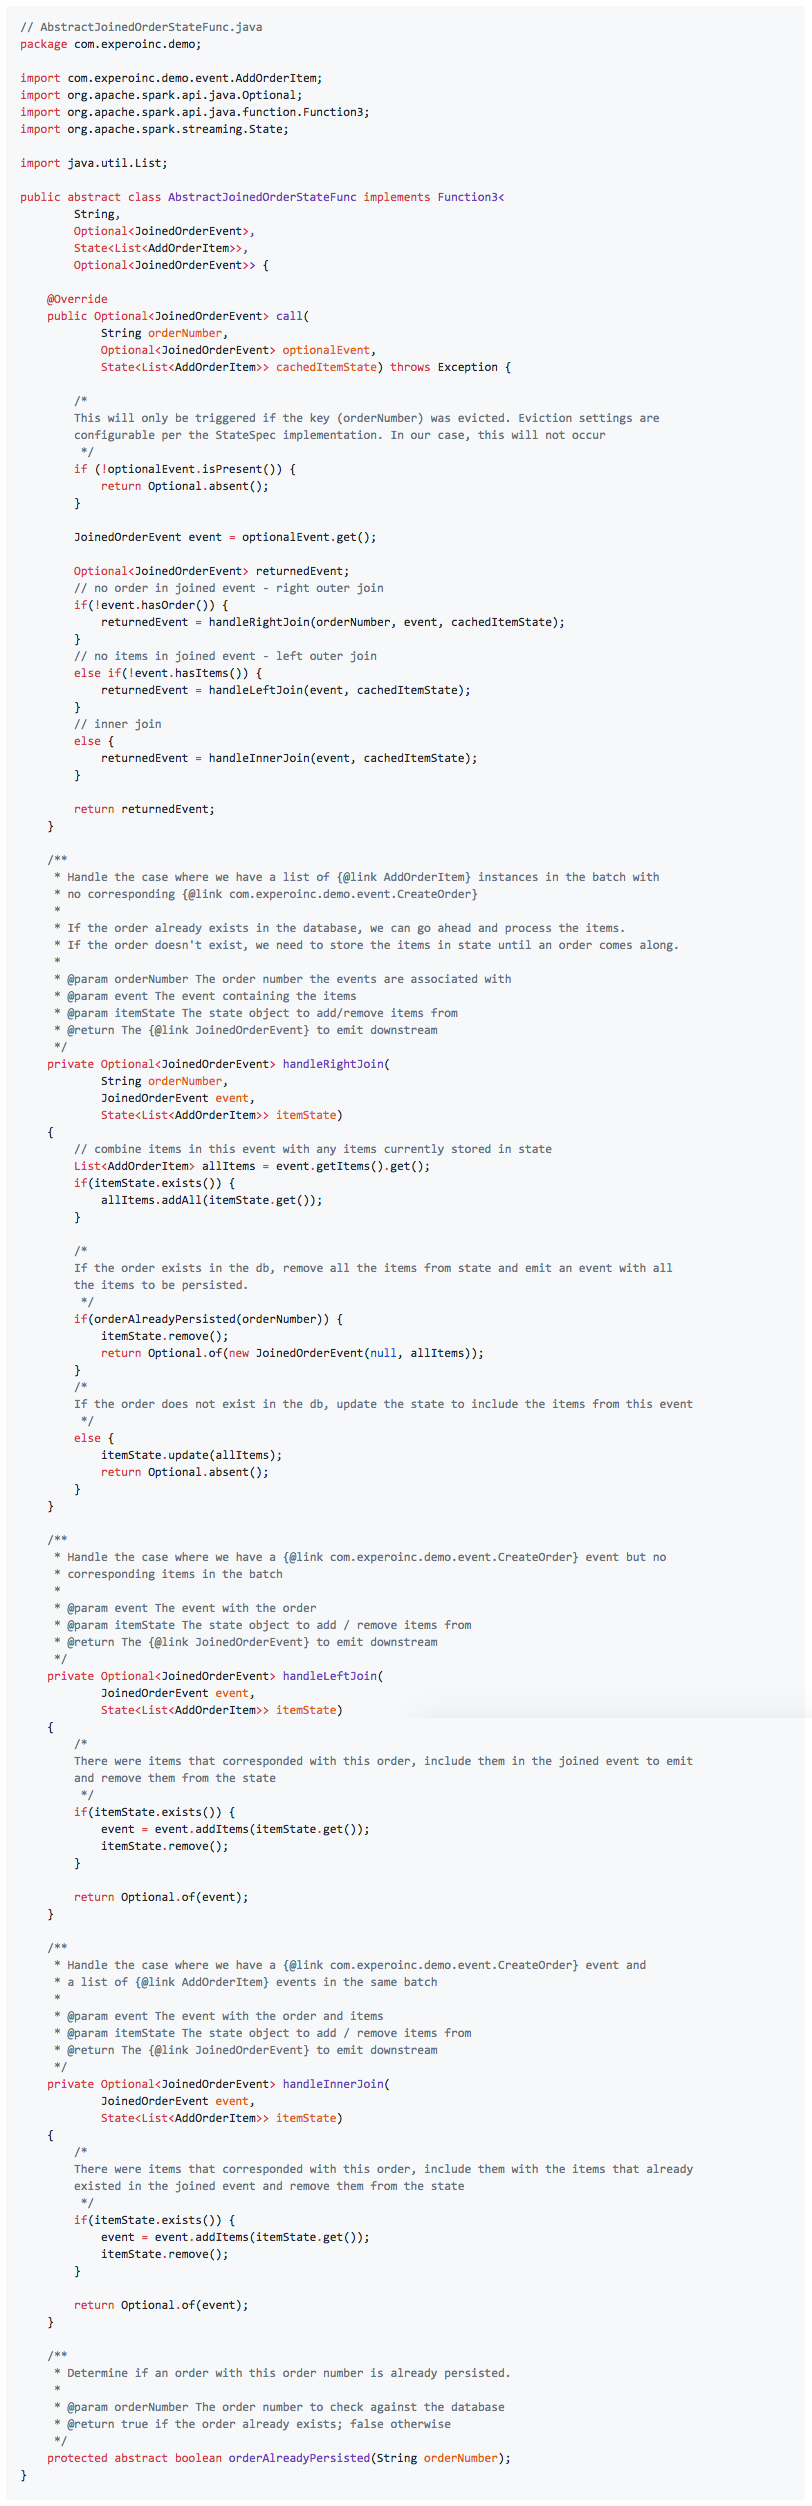 // AbstractJoinedOrderStateFunc.java package com.experoinc.demo;  import com.experoinc.demo.event.AddOrderItem; import org.apache.spark.api.java.Optional; import org.apache.spark.api.java.function.Function3; import org.apache.spark.streaming.State;  import java.util.List;  public abstract class AbstractJoinedOrderStateFunc implements Function3<         String,         Optional<JoinedOrderEvent>,         State<List<AddOrderItem>>,         Optional<JoinedOrderEvent>> {      @Override     public Optional<JoinedOrderEvent> call(             String orderNumber,             Optional<JoinedOrderEvent> optionalEvent,             State<List<AddOrderItem>> cachedItemState) throws Exception {          /*         This will only be triggered if the key (orderNumber) was evicted. Eviction settings are         configurable per the StateSpec implementation. In our case, this will not occur          */         if (!optionalEvent.isPresent()) {             return Optional.absent();         }          JoinedOrderEvent event = optionalEvent.get();          Optional<JoinedOrderEvent> returnedEvent;         // no order in joined event - right outer join         if(!event.hasOrder()) {             returnedEvent = handleRightJoin(orderNumber, event, cachedItemState);         }         // no items in joined event - left outer join         else if(!event.hasItems()) {             returnedEvent = handleLeftJoin(event, cachedItemState);         }         // inner join         else {             returnedEvent = handleInnerJoin(event, cachedItemState);         }          return returnedEvent;     }      /**      * Handle the case where we have a list of {@link AddOrderItem} instances in the batch with      * no corresponding {@link com.experoinc.demo.event.CreateOrder}      *      * If the order already exists in the database, we can go ahead and process the items.      * If the order doesn't exist, we need to store the items in state until an order comes along.      *      * @param orderNumber 